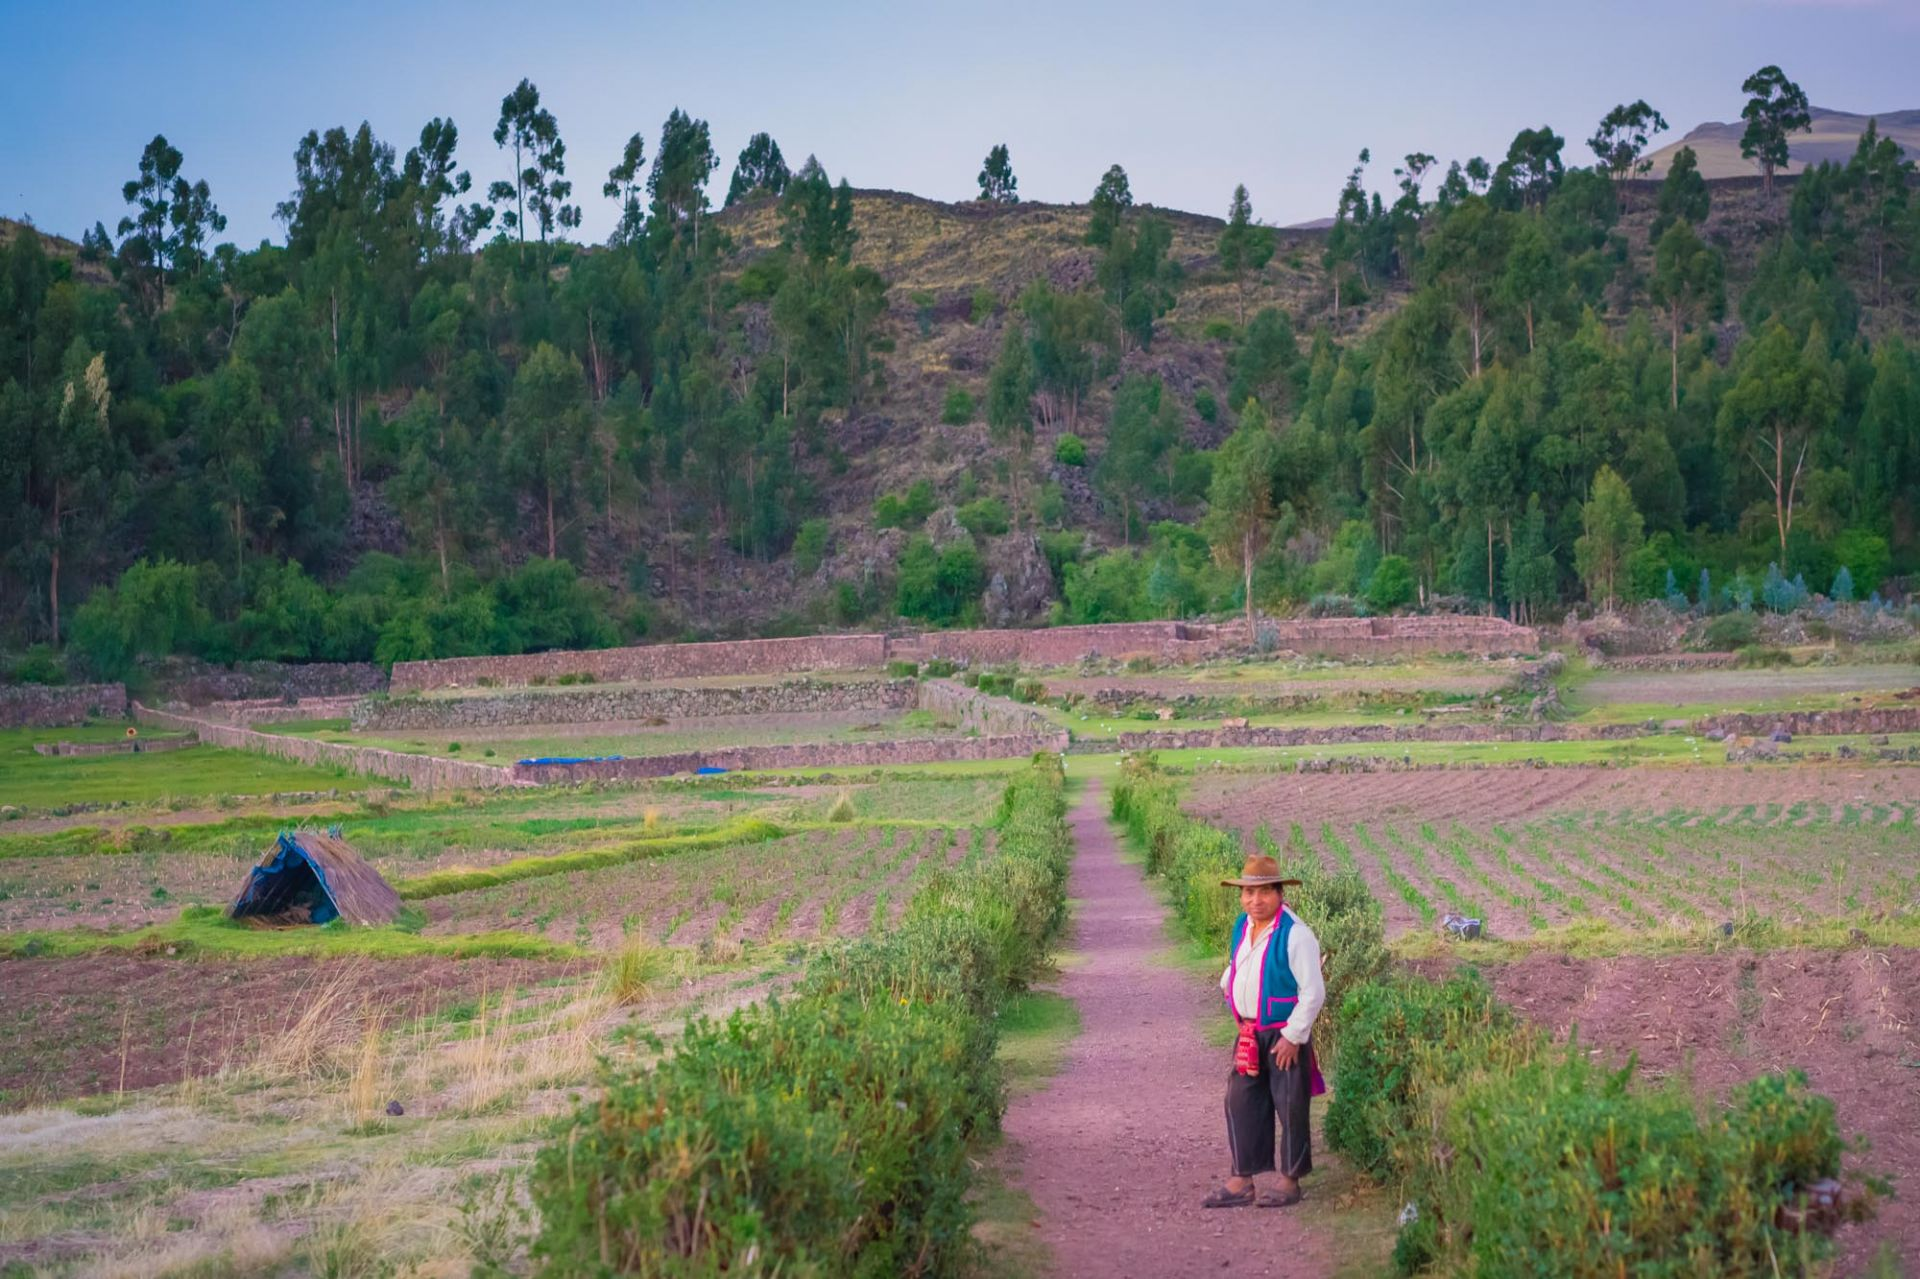 Bonifacio beckons you into his farm at Raqchi, and into the Classic Peru itinerary